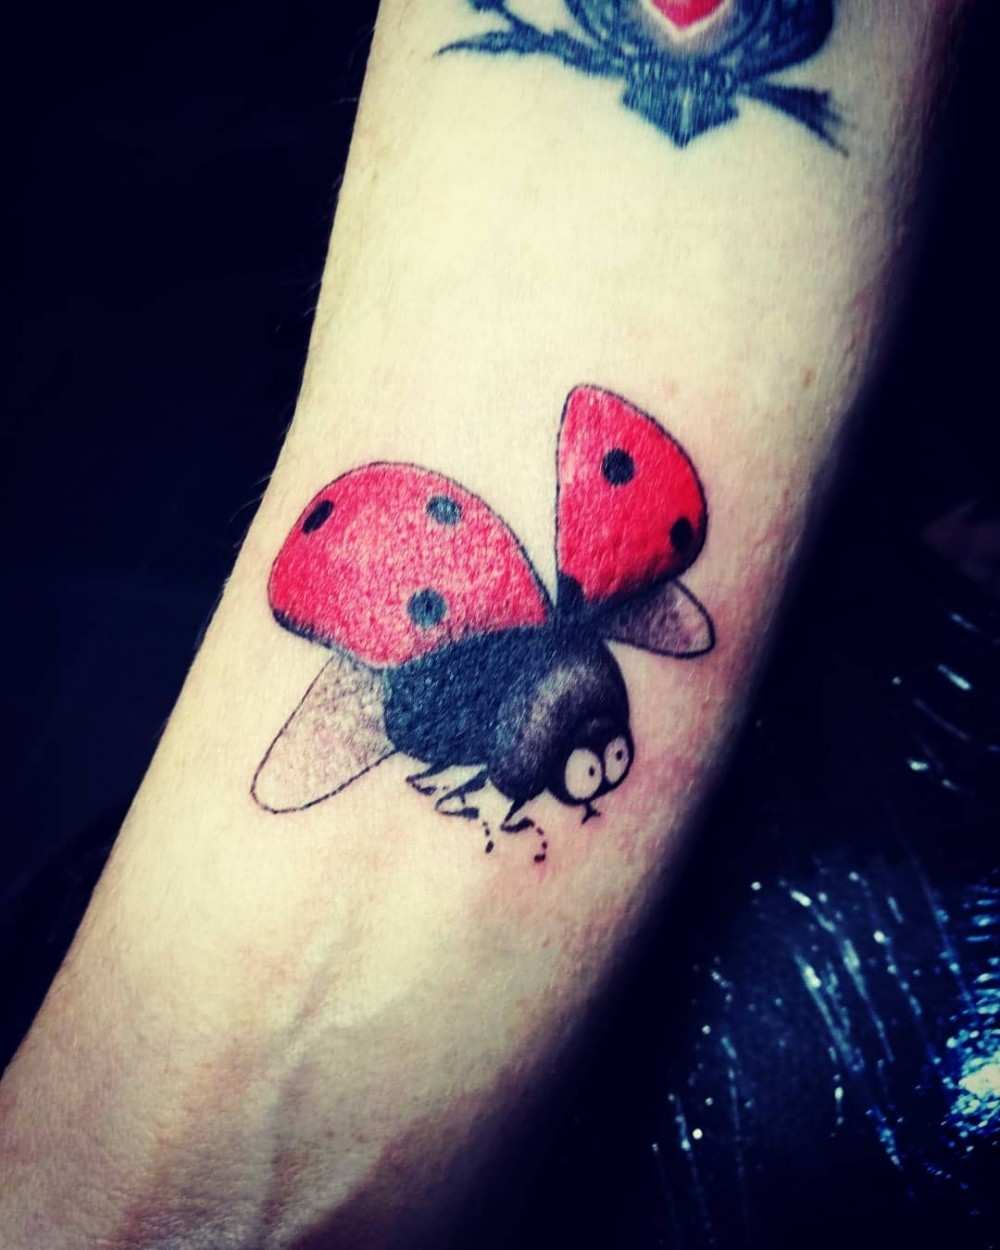 """How To Get Good Luck in 2020? Get Inspired With These 27+ Miraculous Ladybug Insect Tattoo Ideas! traditional ladybug tattoo realistic ladybug tattoo ladybug tattoos meaning ladybug tattoo with name ladybug tattoo watercolor ladybug tattoo simple ladybug tattoo outline ladybug tattoo for guys small ladybug tattoo black and white ladybug tattoo behind ear ladybug tattoo on wrist ladybug and flower tattoo ladybug outline tattoo miraculous ladybug tattoo ladybug tattoo black and white ladybug and butterfly tattoo ladybug tattoo realistic ladybug tattoo on shoulder simple ladybug tattoo black and white minimalist ladybug tattoo ladybug minimalist tattoo flower of life tattoo ladybug drawing ladybug meaning ladybug tattoo black black and white ladybug"""